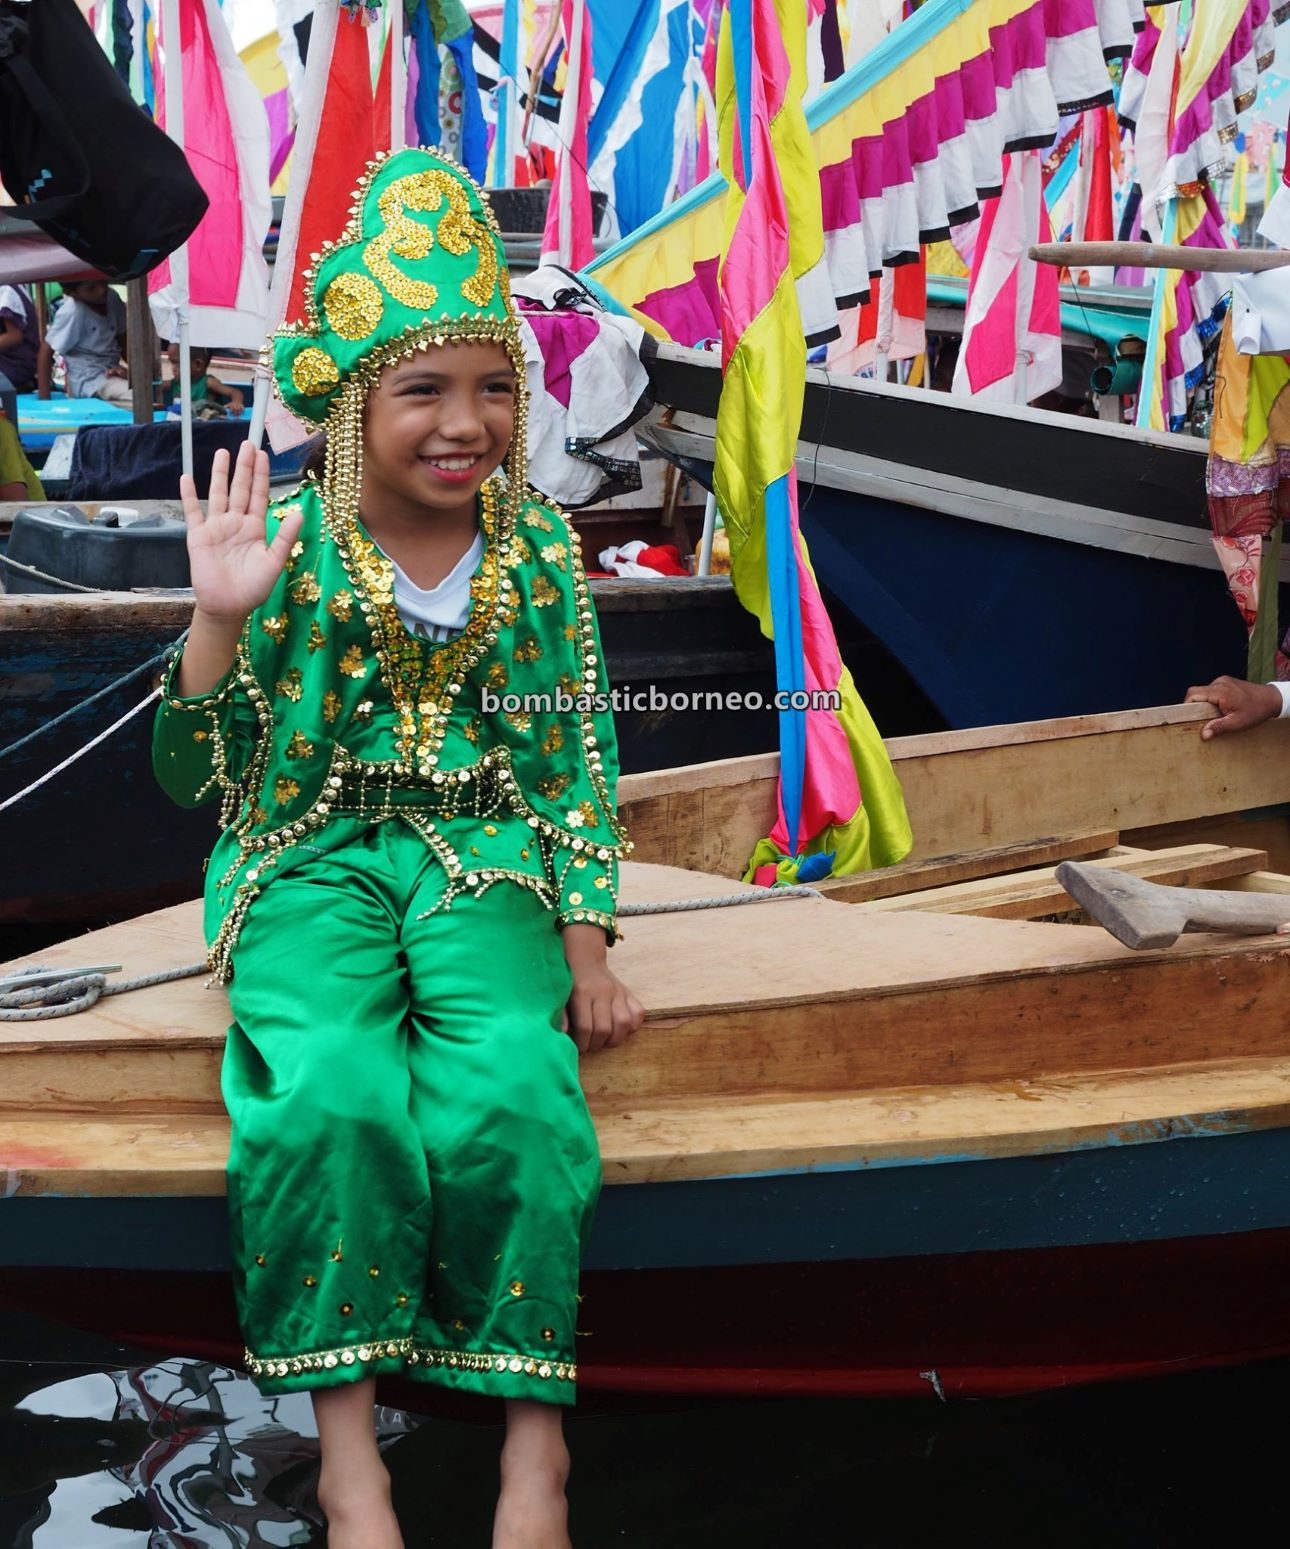 Water Festival, parade, Pesta Regatta Lepa, Sea Gypsies, Suku Bajau Laut, ethnic, budaya, traditional, indigenous, Semporna, Sabah, Malaysia, Tourist attraction, travel guide, Borneo,